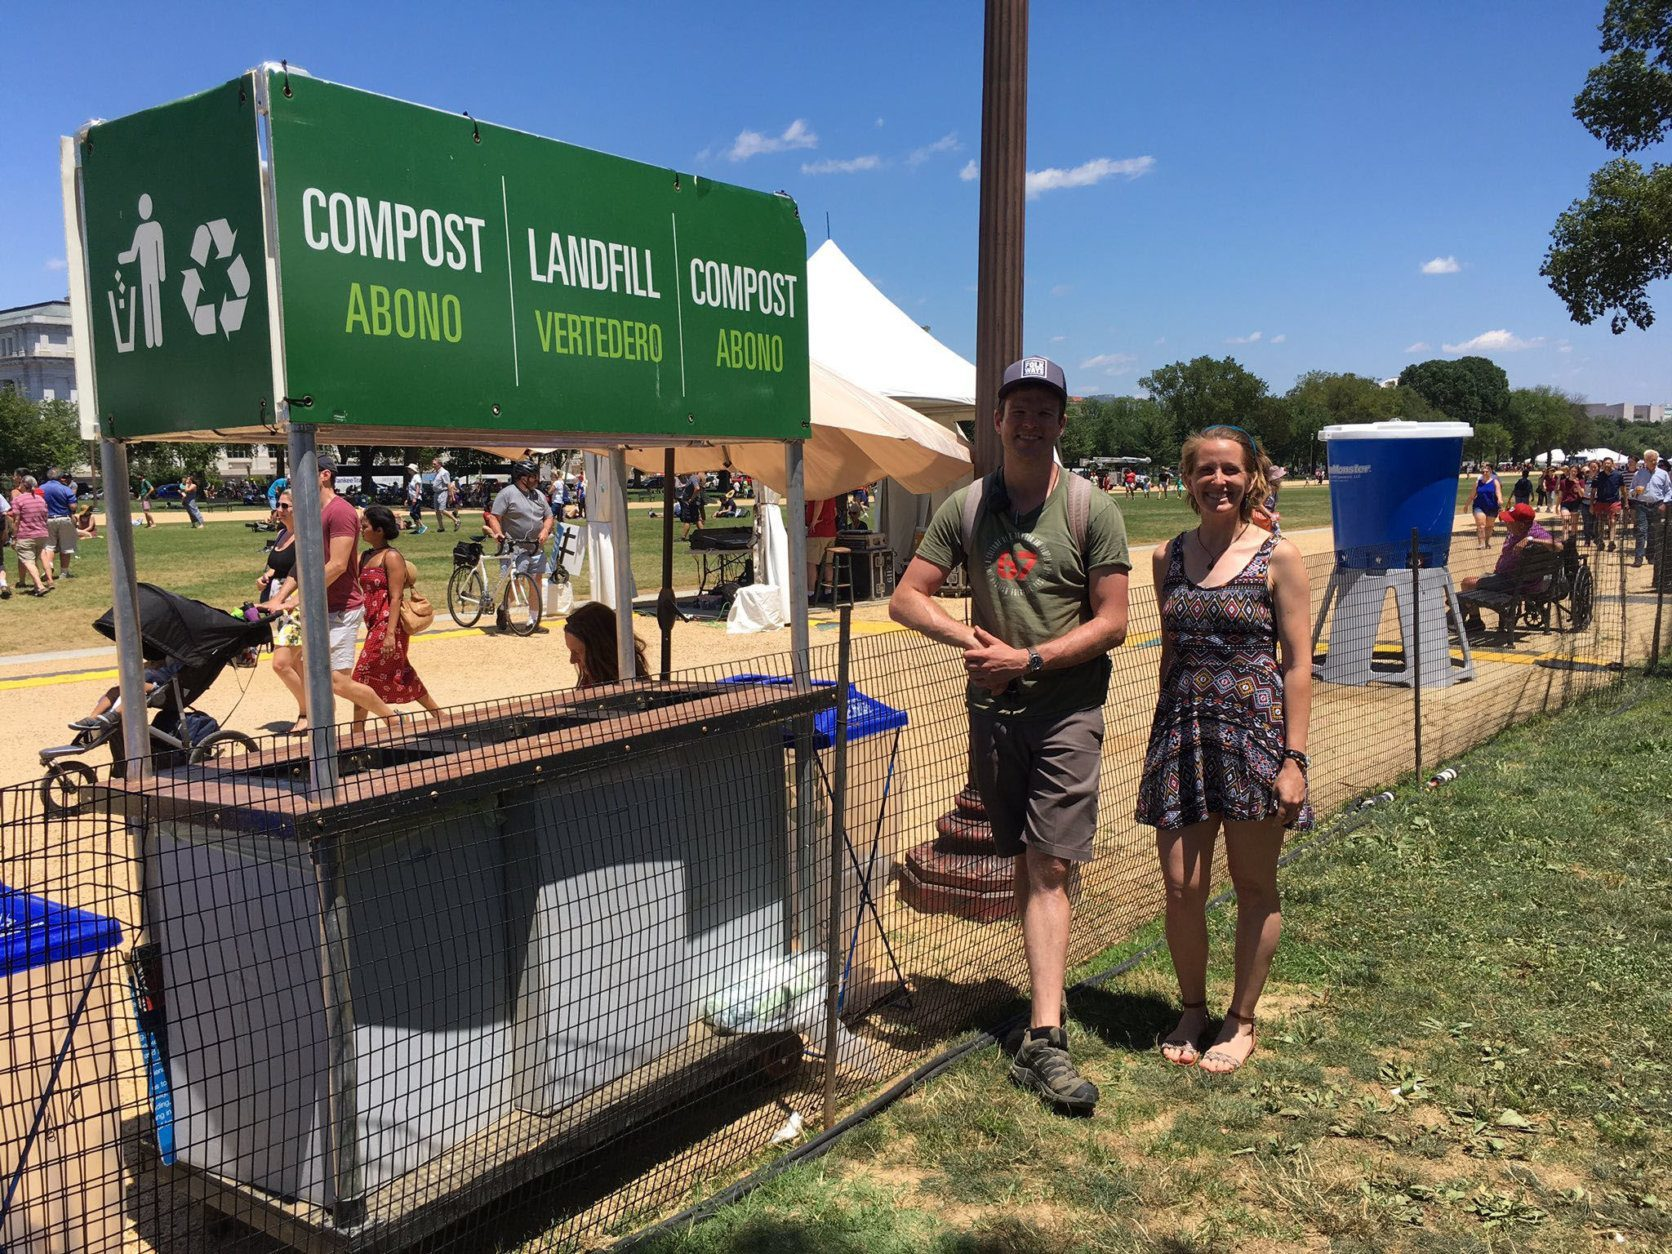 Festival operations director Justin Hensley with Kristi Blummer of the Compost Crew discuss sustainable practices at the Smithsonian Folklife Festival. (WTOP/Liz Anderson)